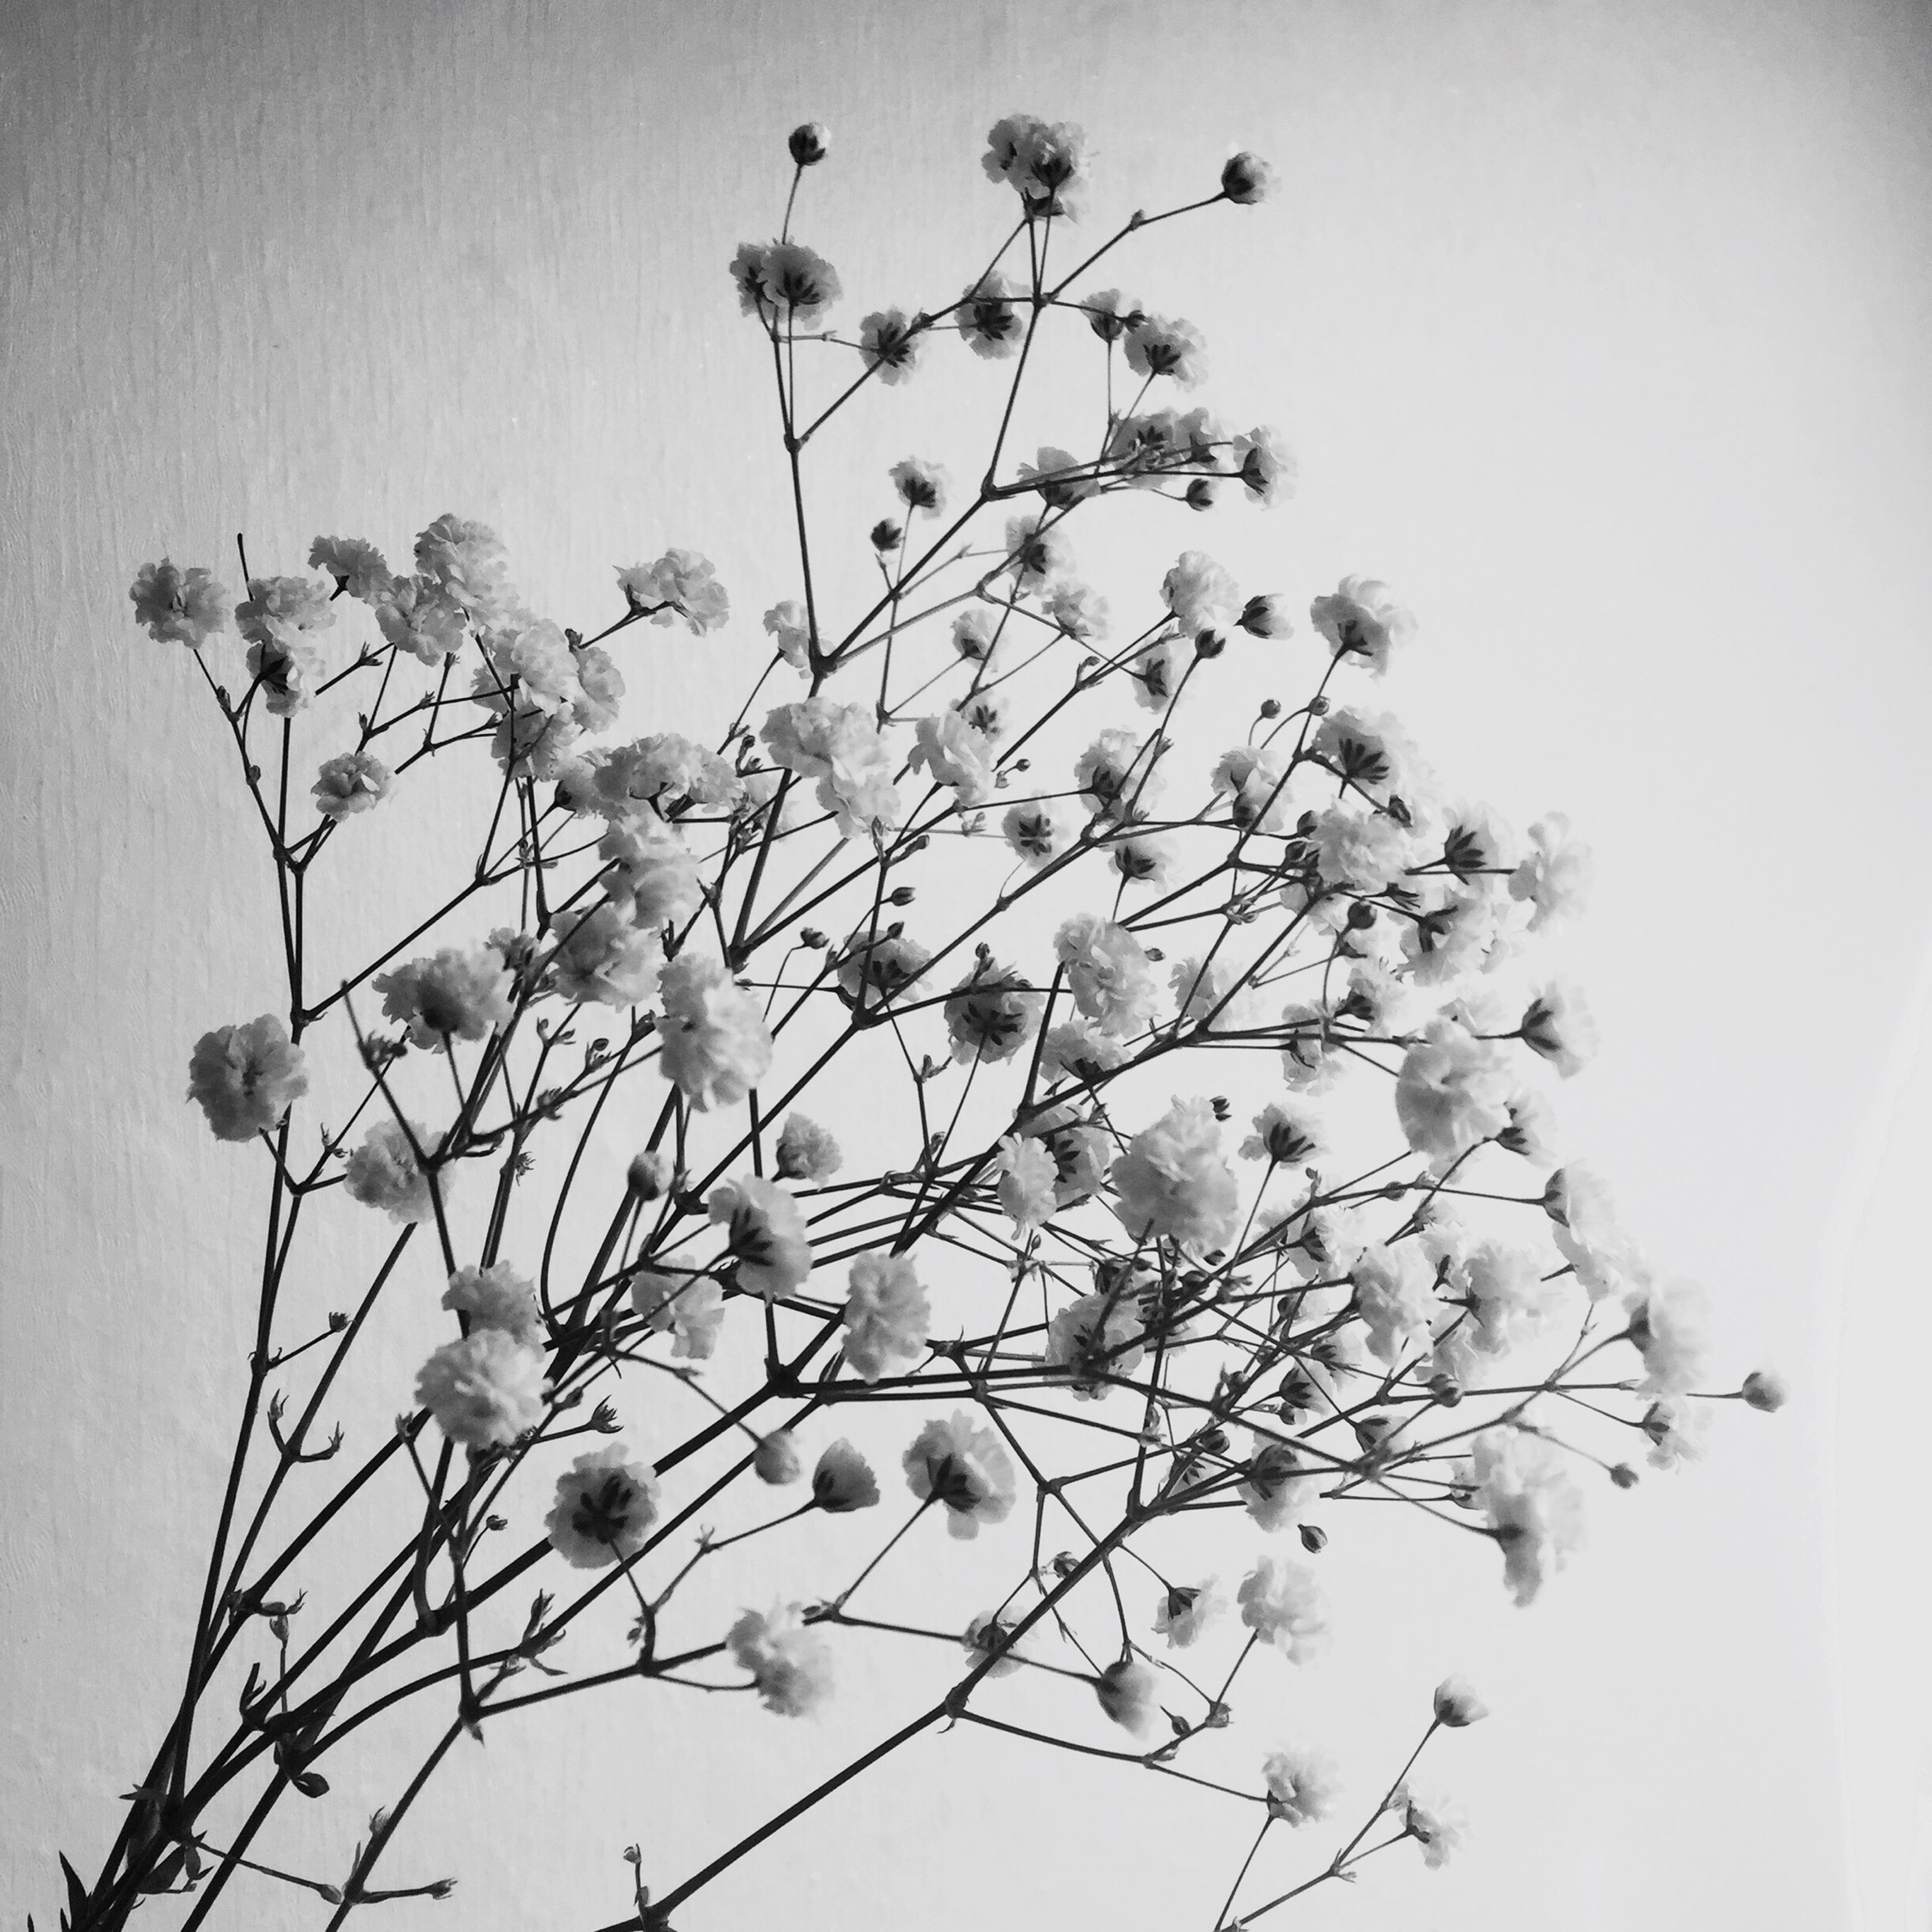 low angle view, growth, clear sky, flower, stem, nature, branch, plant, freshness, beauty in nature, fragility, copy space, twig, sky, leaf, no people, close-up, bud, day, outdoors